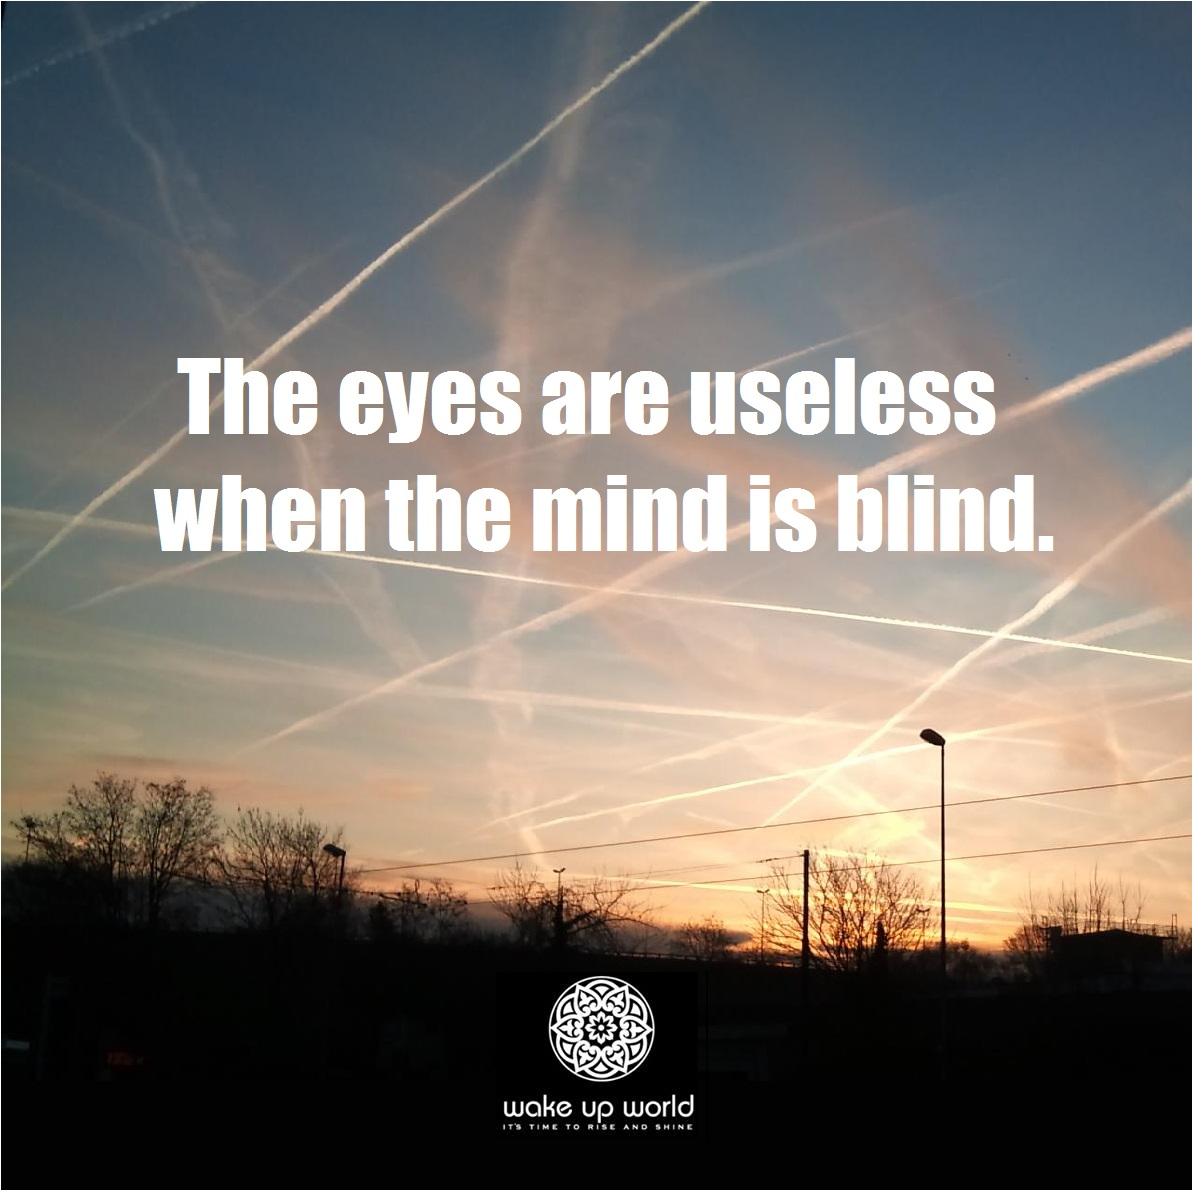 Geoengineering-The-Eyes-Are-Useless-When-The-Mind-Is-Blind-Meme